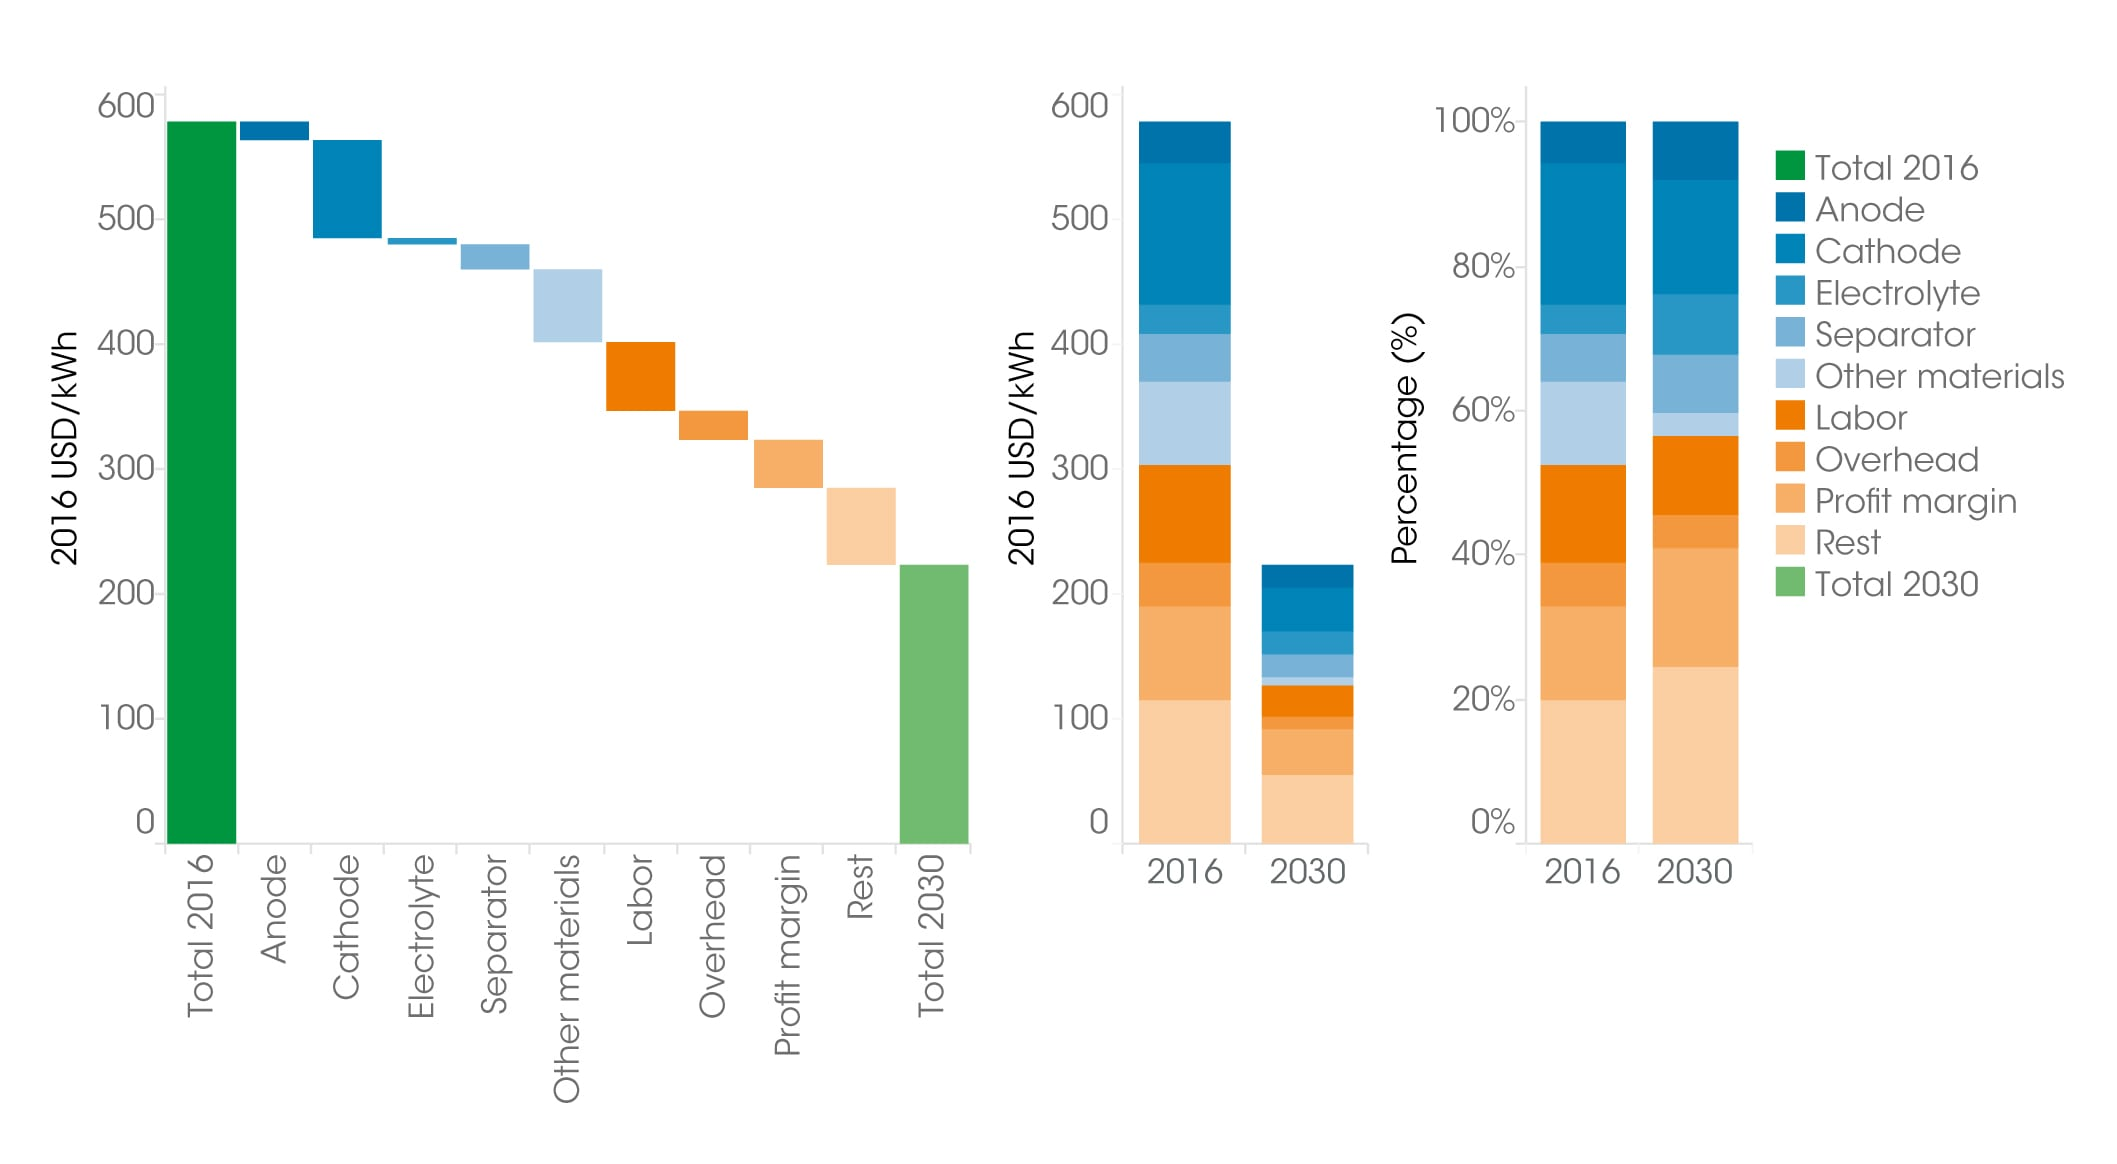 Fig. 5. Decrease in cost of lithium ion batteries, 2016 and 2030 Source: IRENA «Electricity storage and renewable energy: Costs & Markets to 2030».